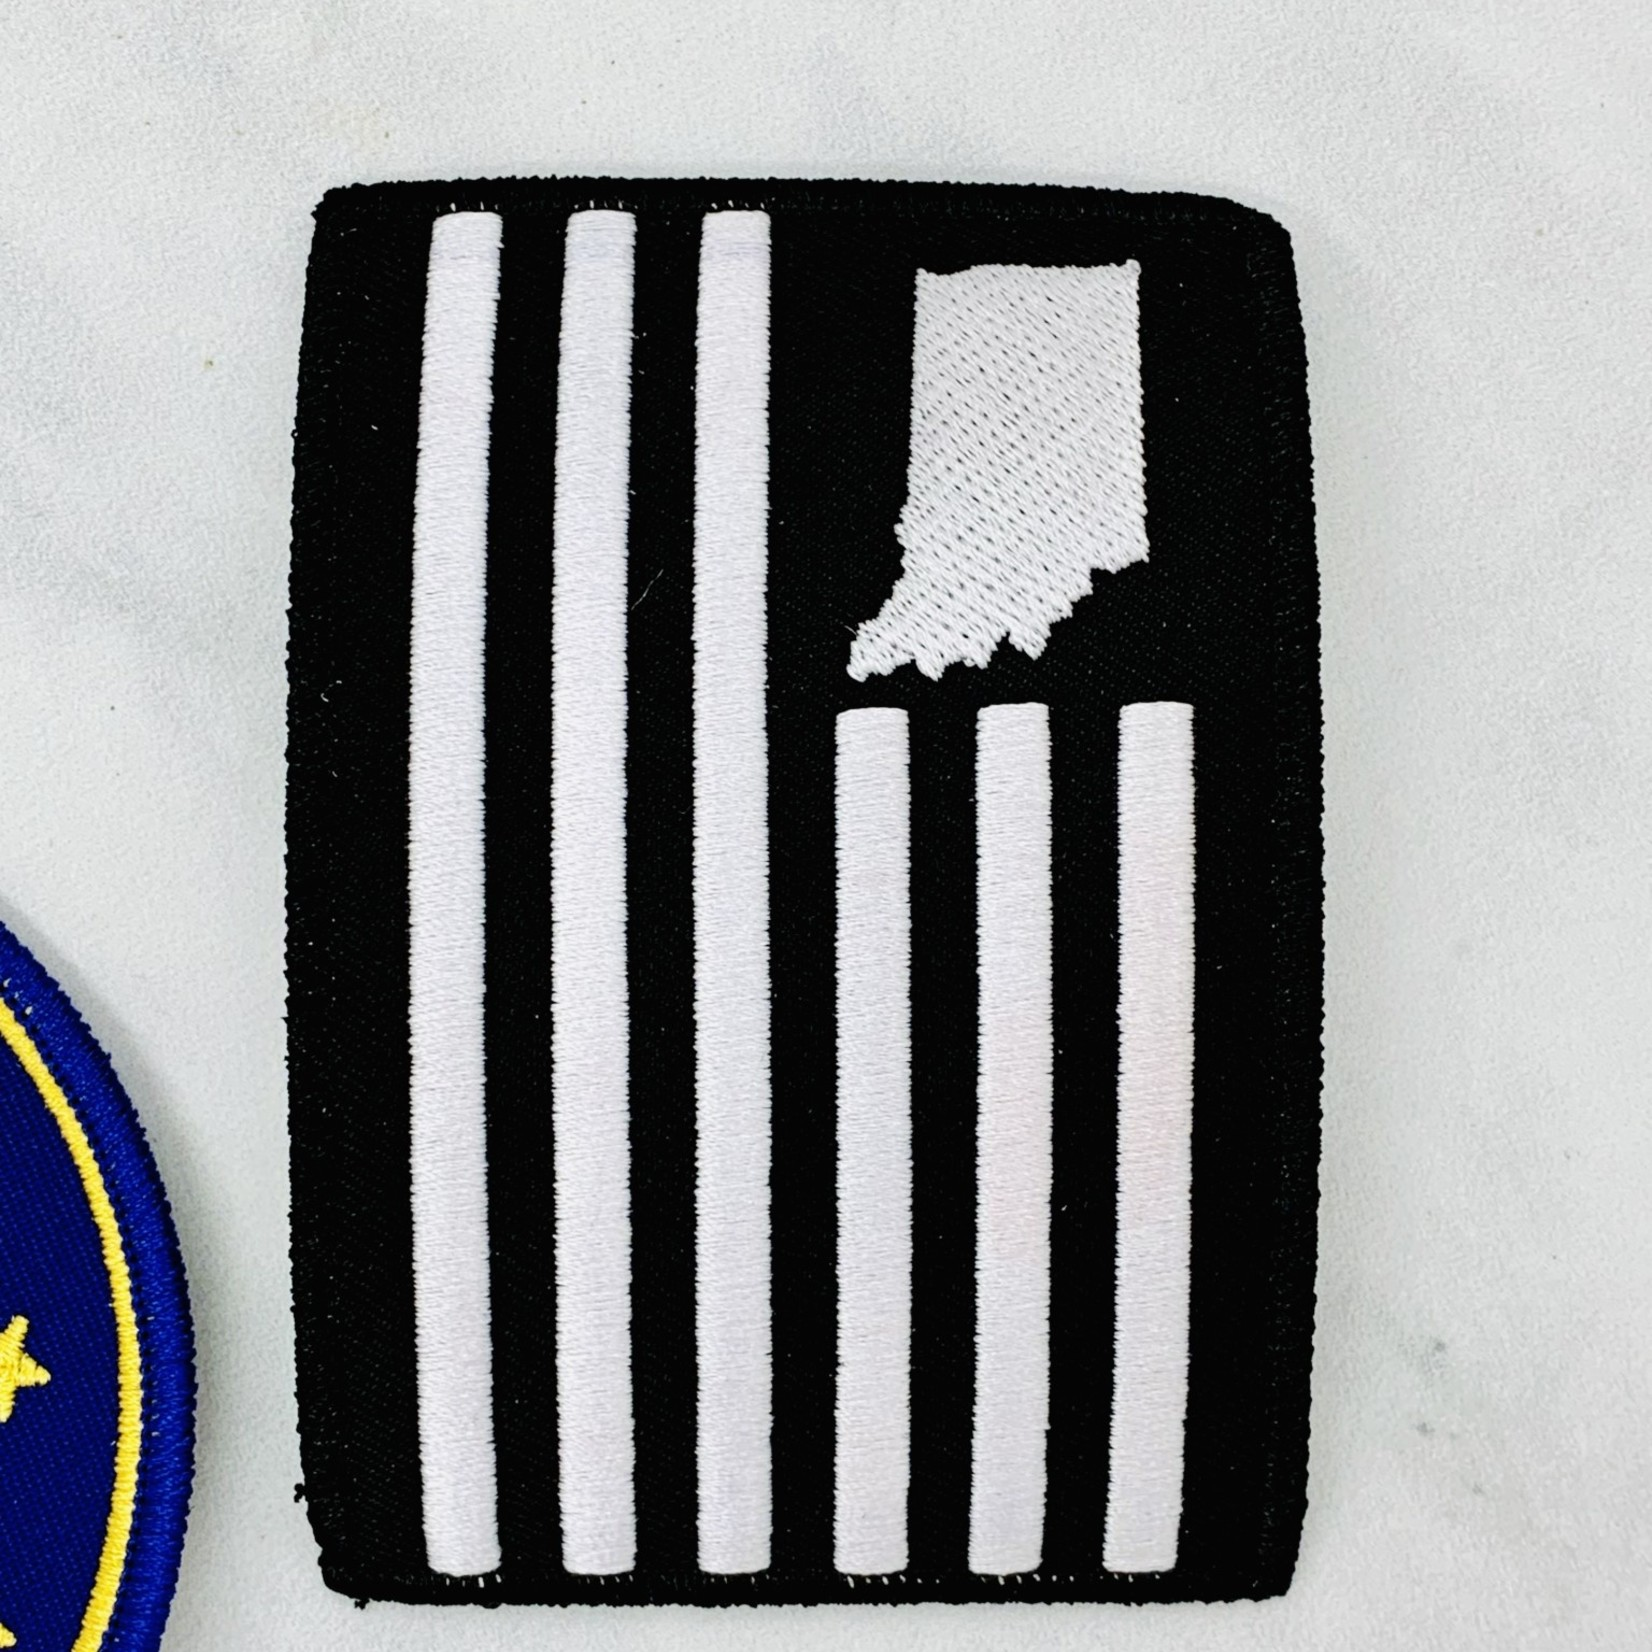 USI Patches